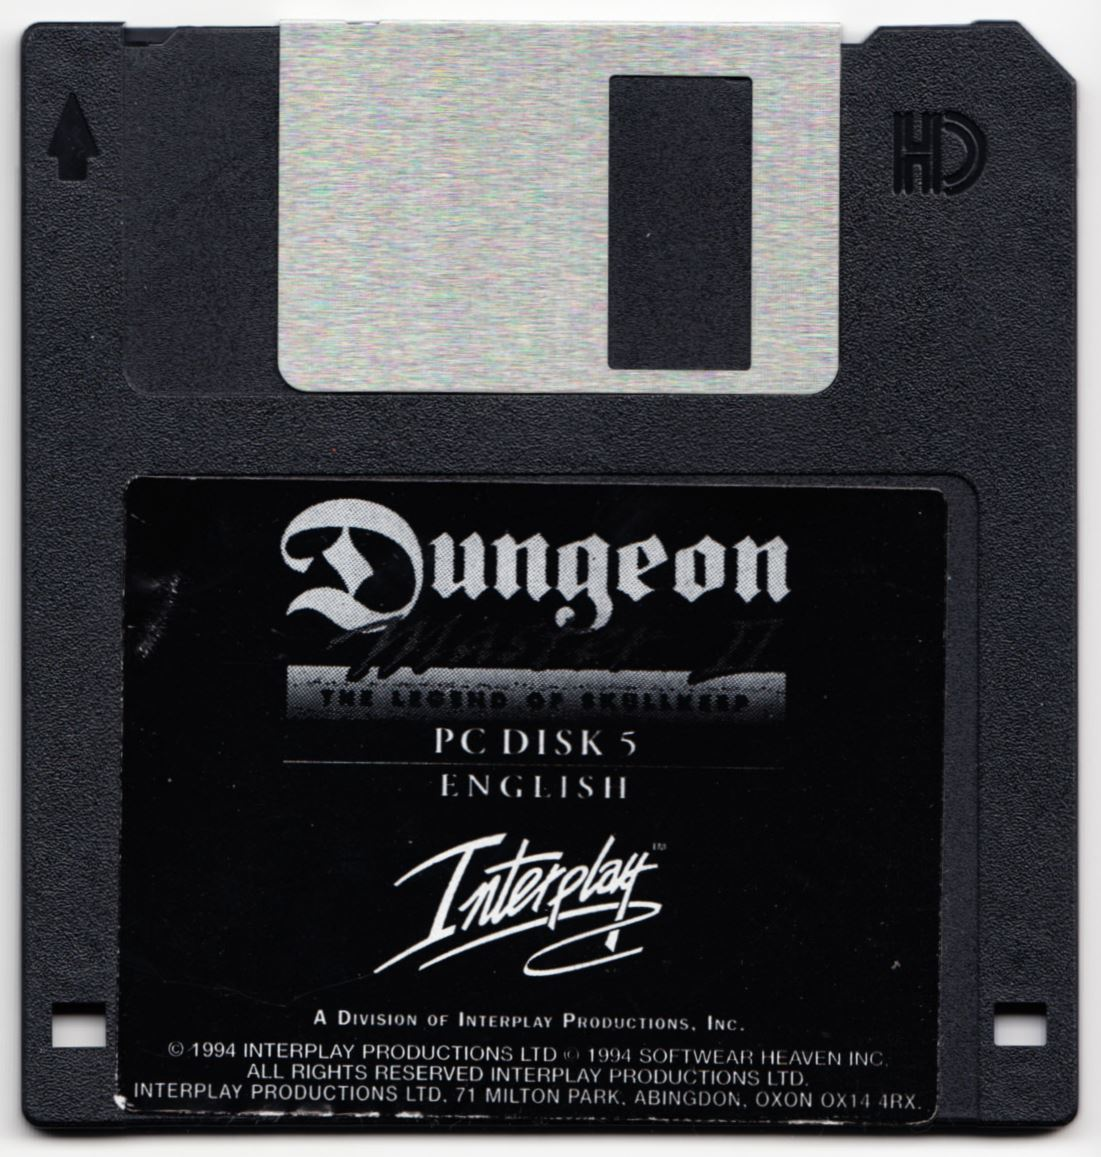 Game - Dungeon Master II - UK - PC - Floppy Version - Disk 5 - Front - Scan